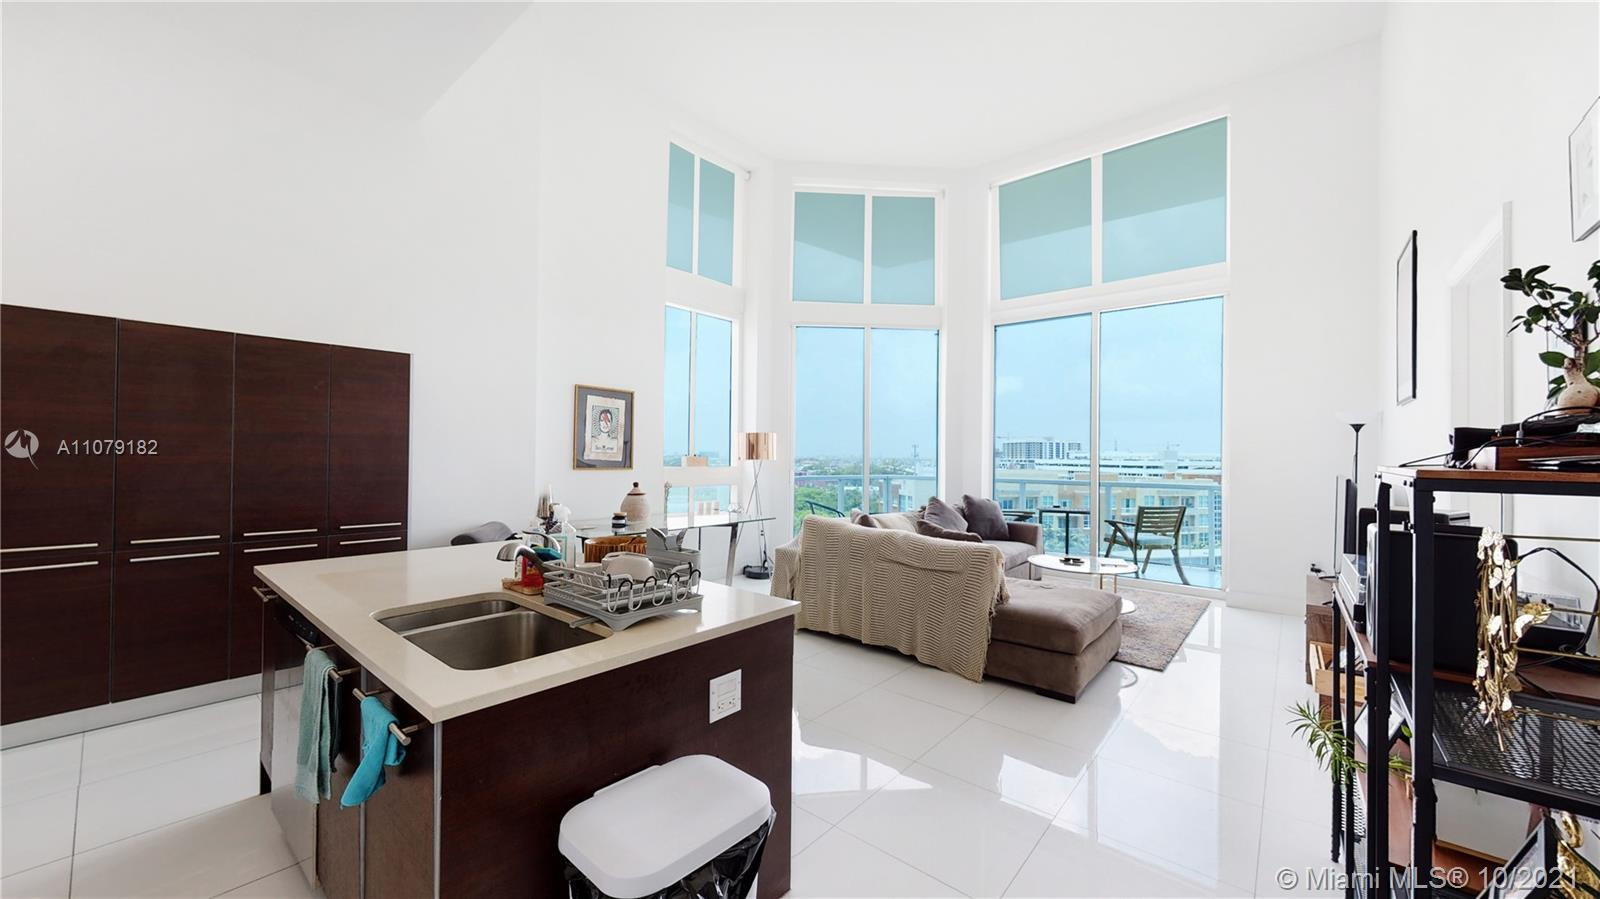 Come see this marvelous 2/2.5 bath unit at Quantum on the Bay with lots of natural light & open conc